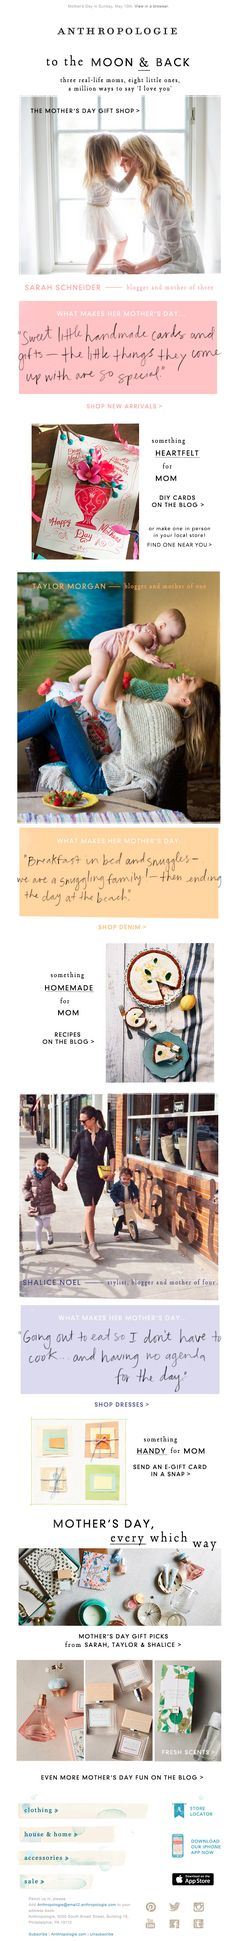 Sent: 4/29/15 | SL: Moms to adore (next to yours, of course). | Great way for a brand to incorporate influencers to their email campaign that's relevant in this Mother's Day email from Anthropologie